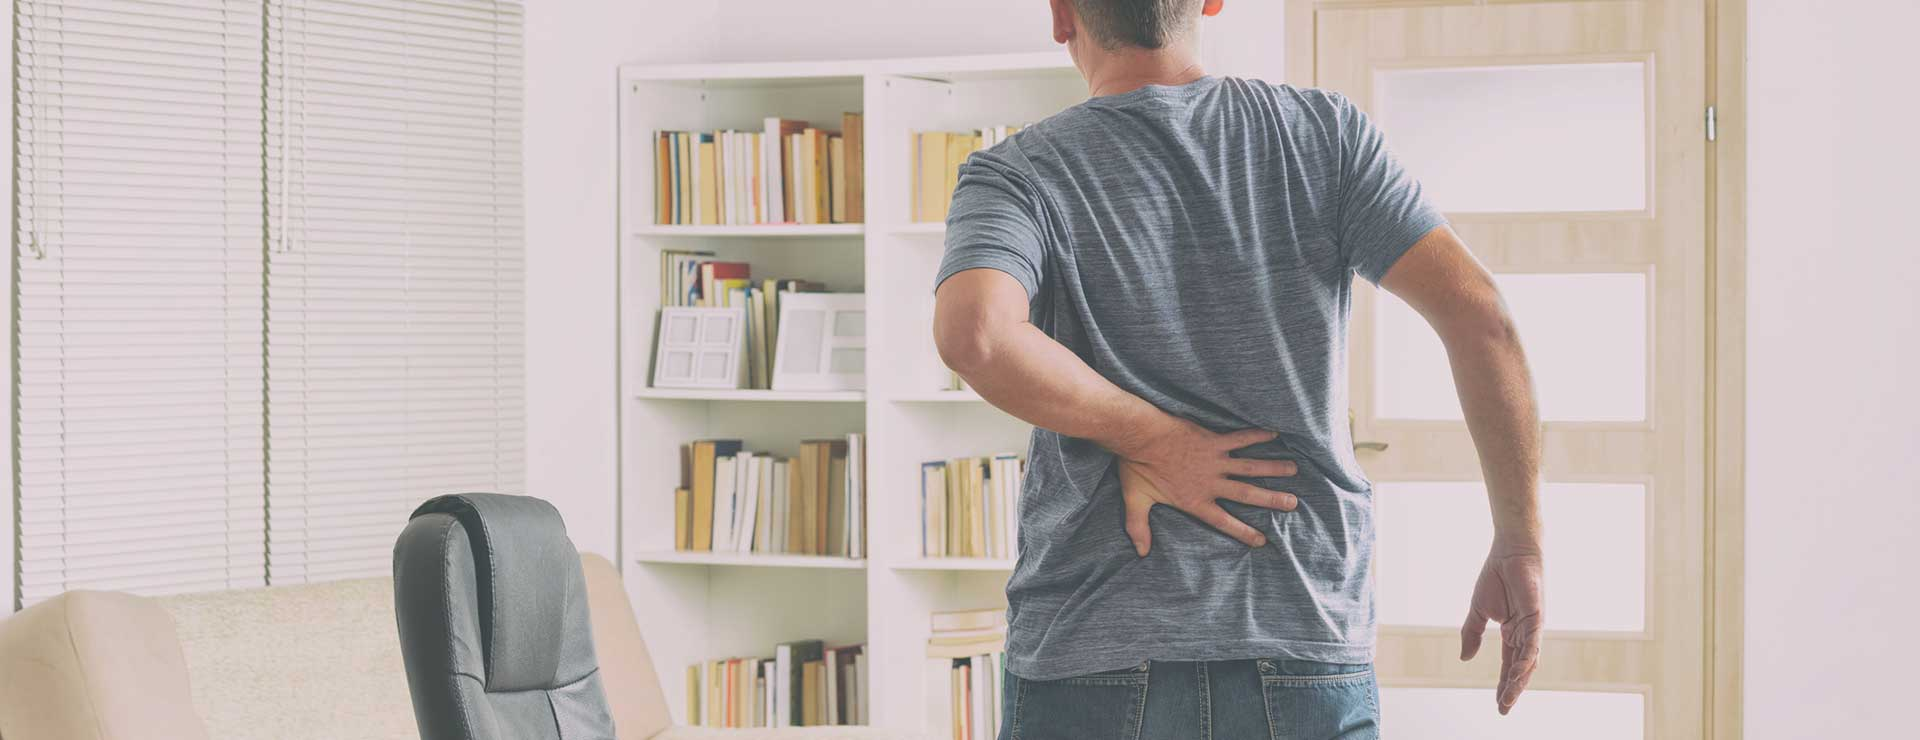 Man experiencing back pain after standing up